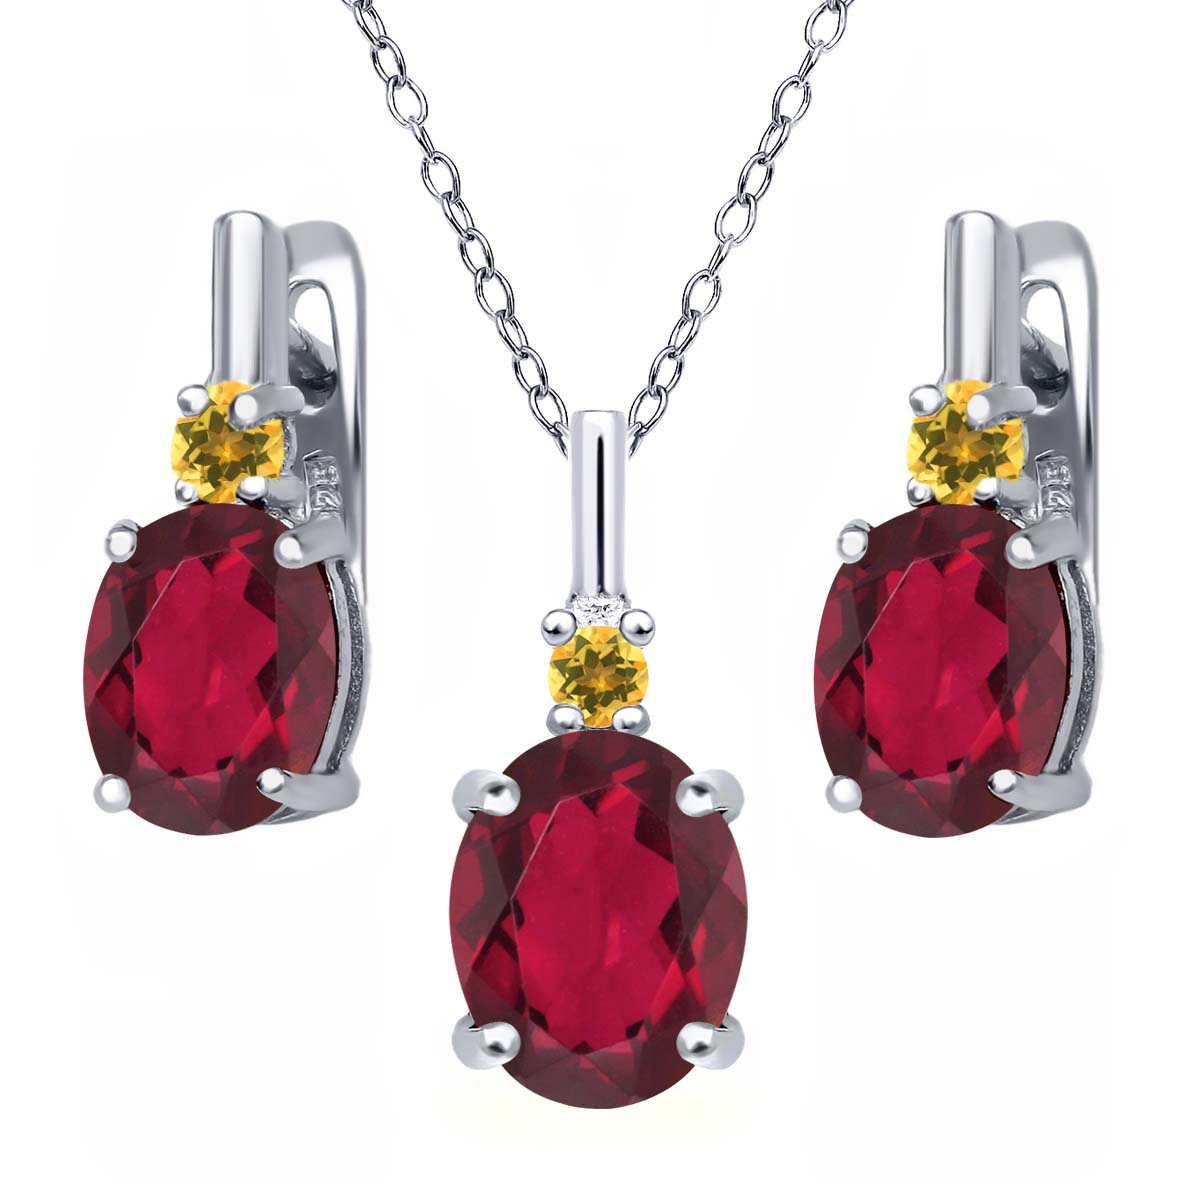 6.97 Ct Red Mystic Quartz and Simulated Citrine 925 Silver Pendant Earrings Set by